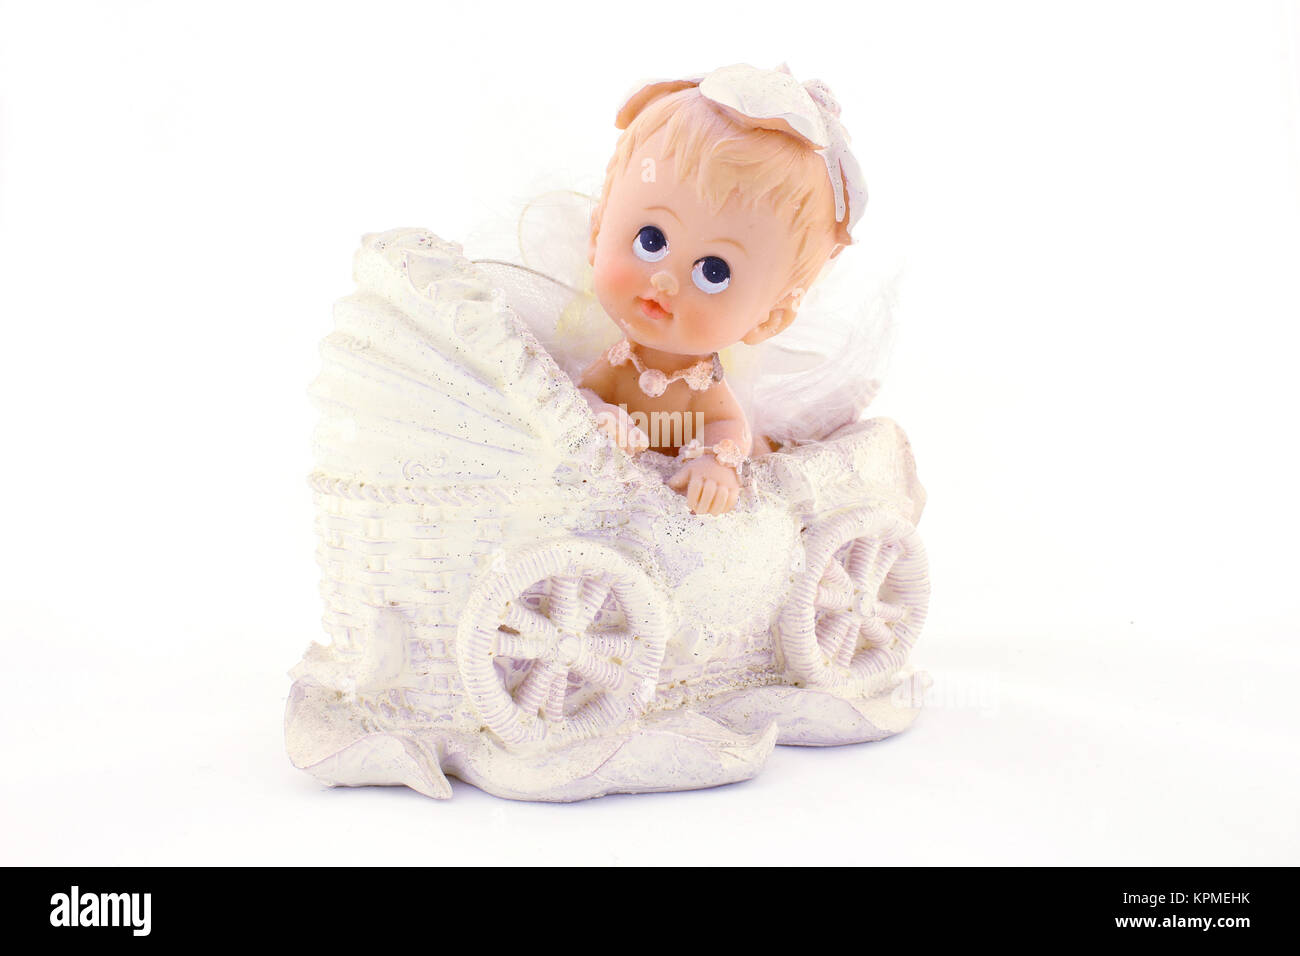 Baby in carriage - Stock Image